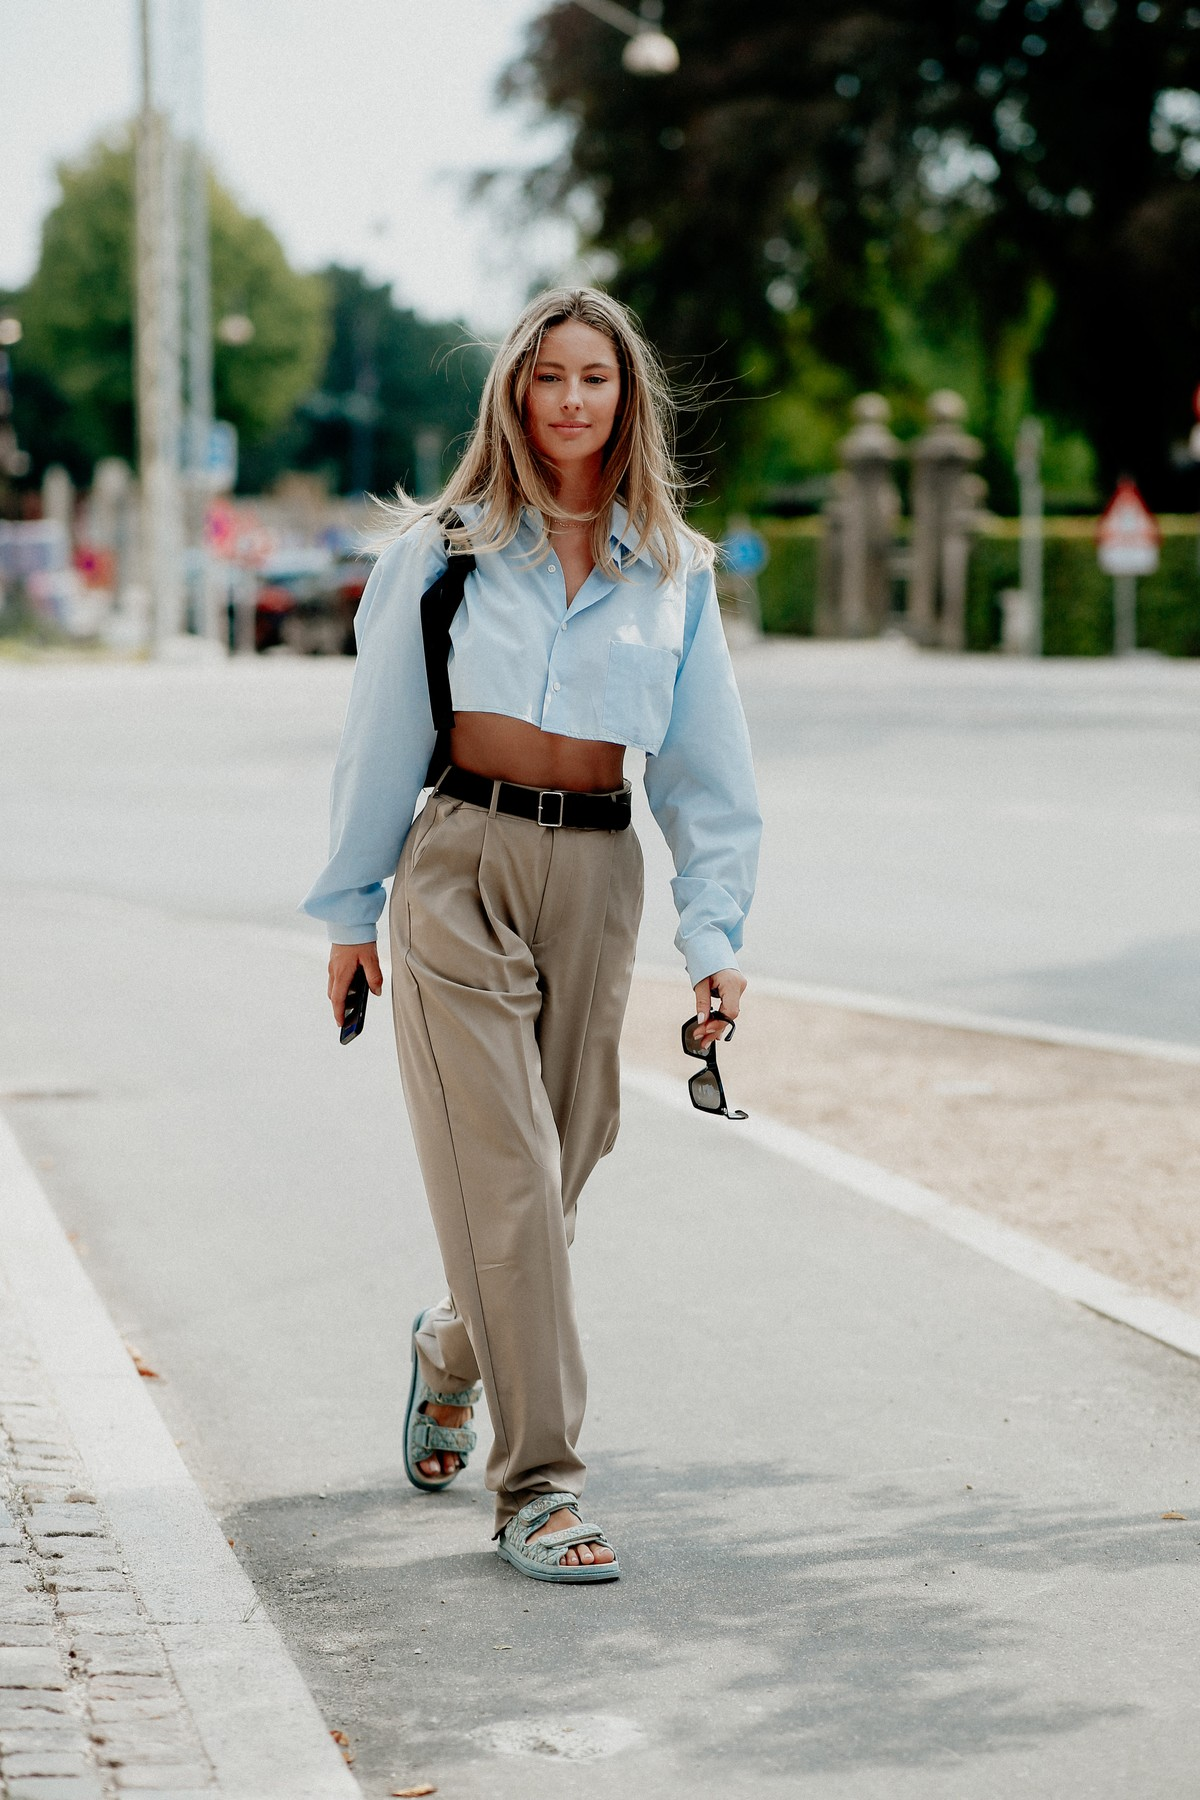 Street style, Mathilde Gohler arriving at 7 days active Spring Summer 2021 show, held at Carlsberg HQ, Copenhagen, Denmark, on August 10th, 2020.,Image: 551765613, License: Rights-managed, Restrictions: , Model Release: no, Credit line: Bertrand-Hillion Marie-Paola/ABACA / Abaca Press / Profimedia